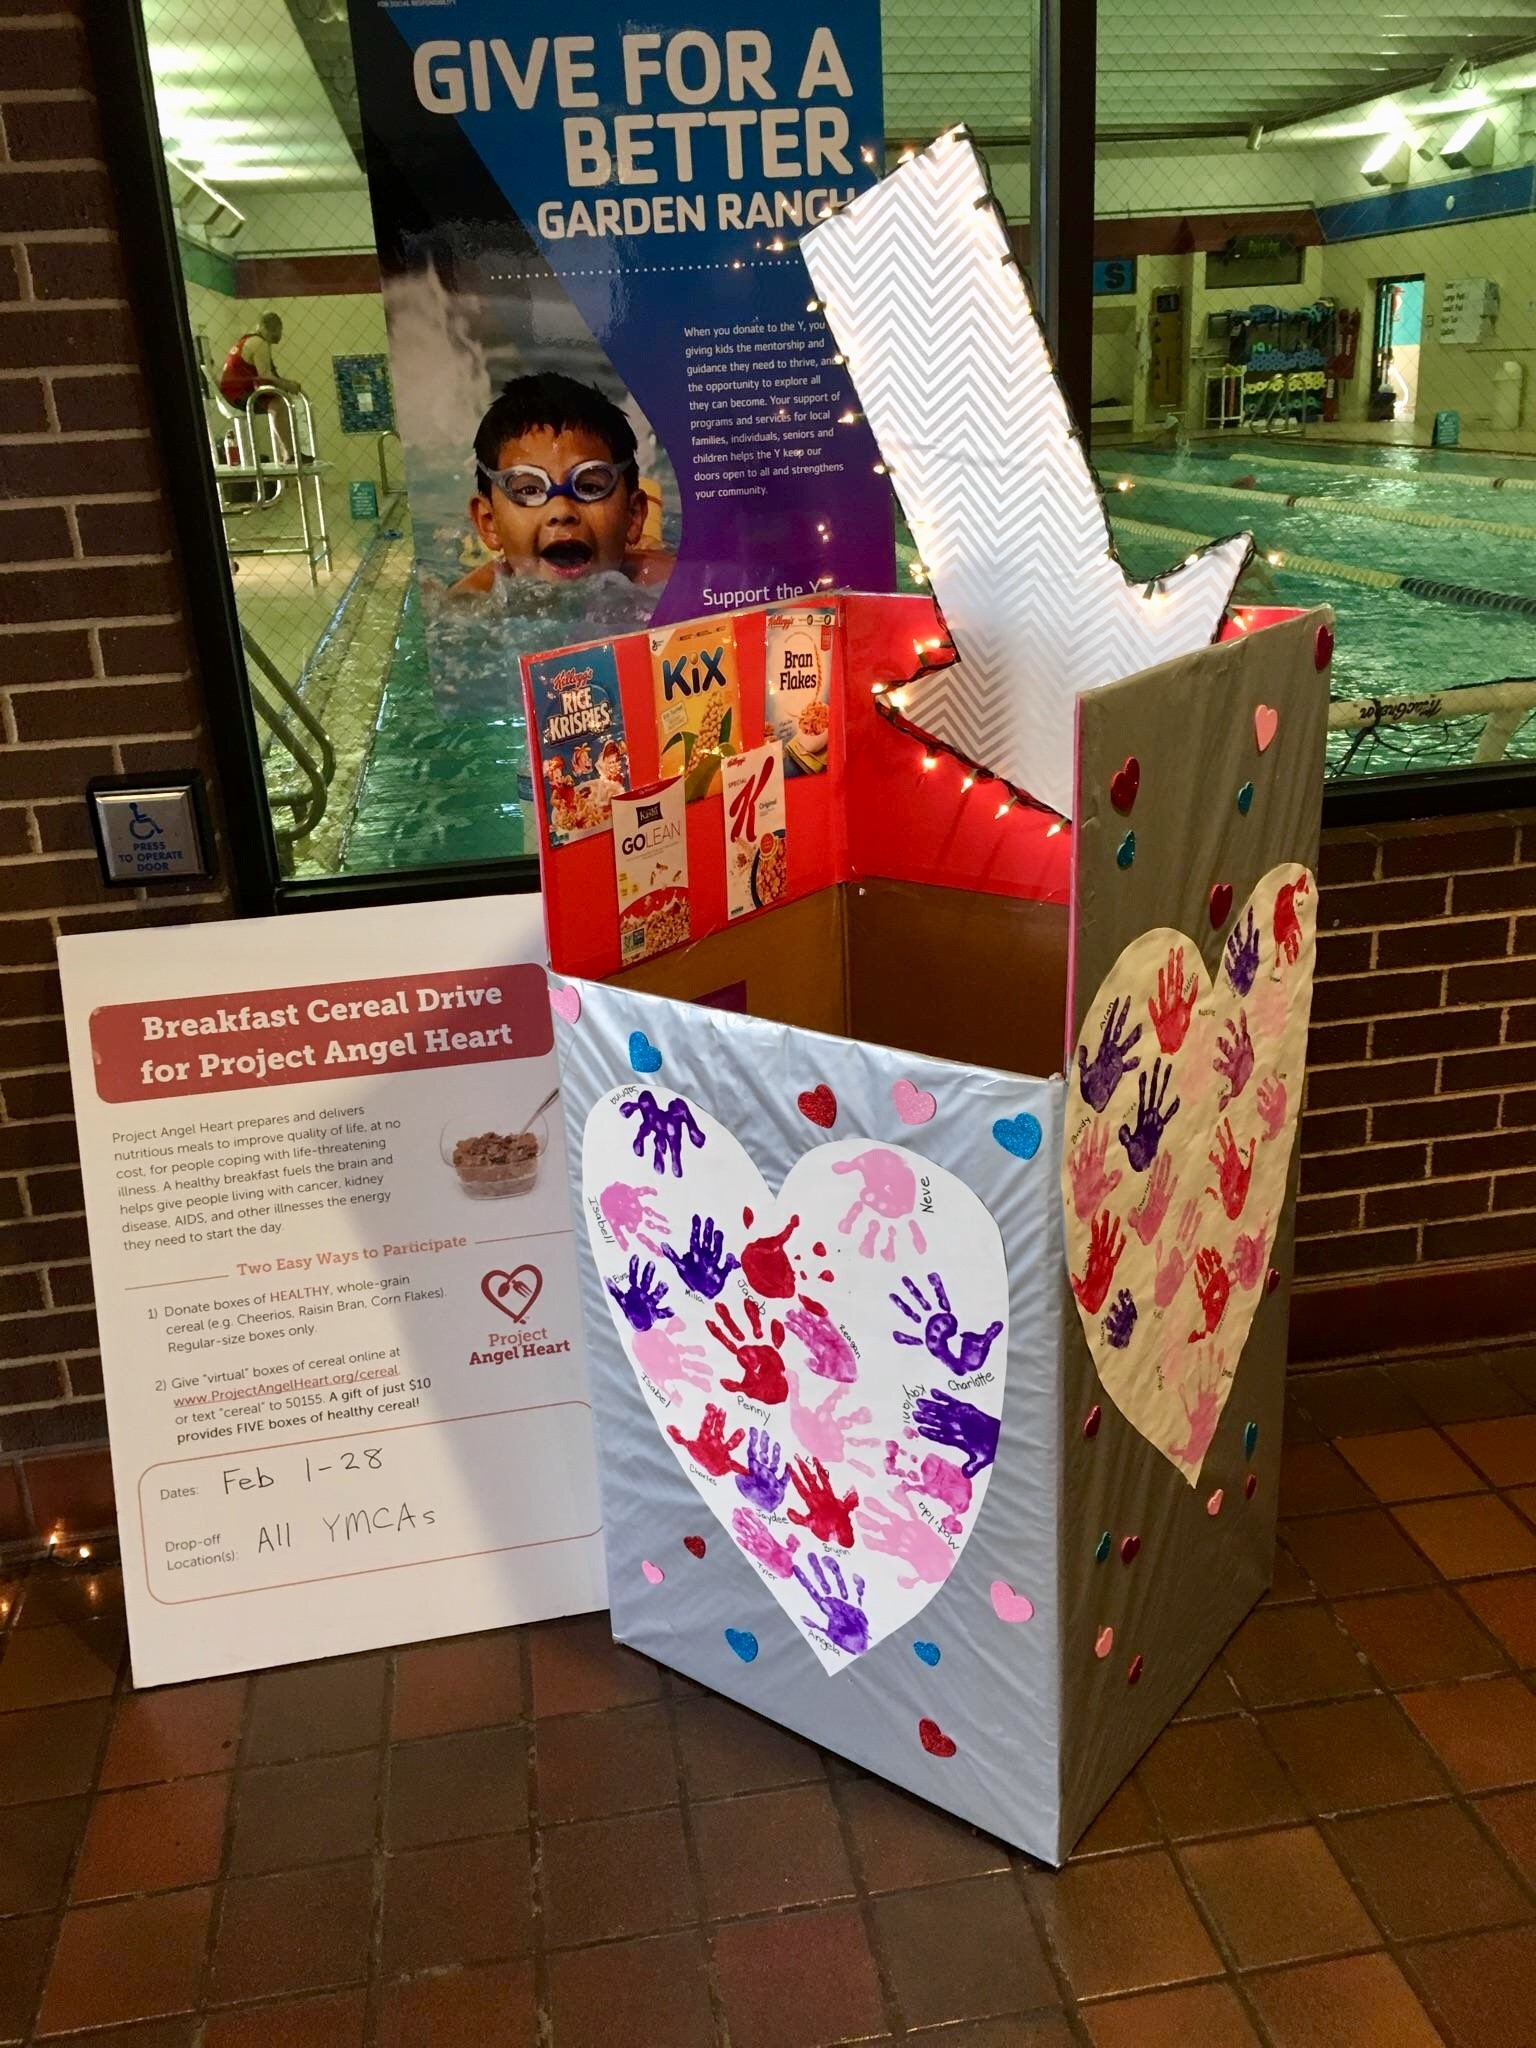 garden ranch ymca won the contest for the most festive cereal donation box - Garden Ranch Ymca